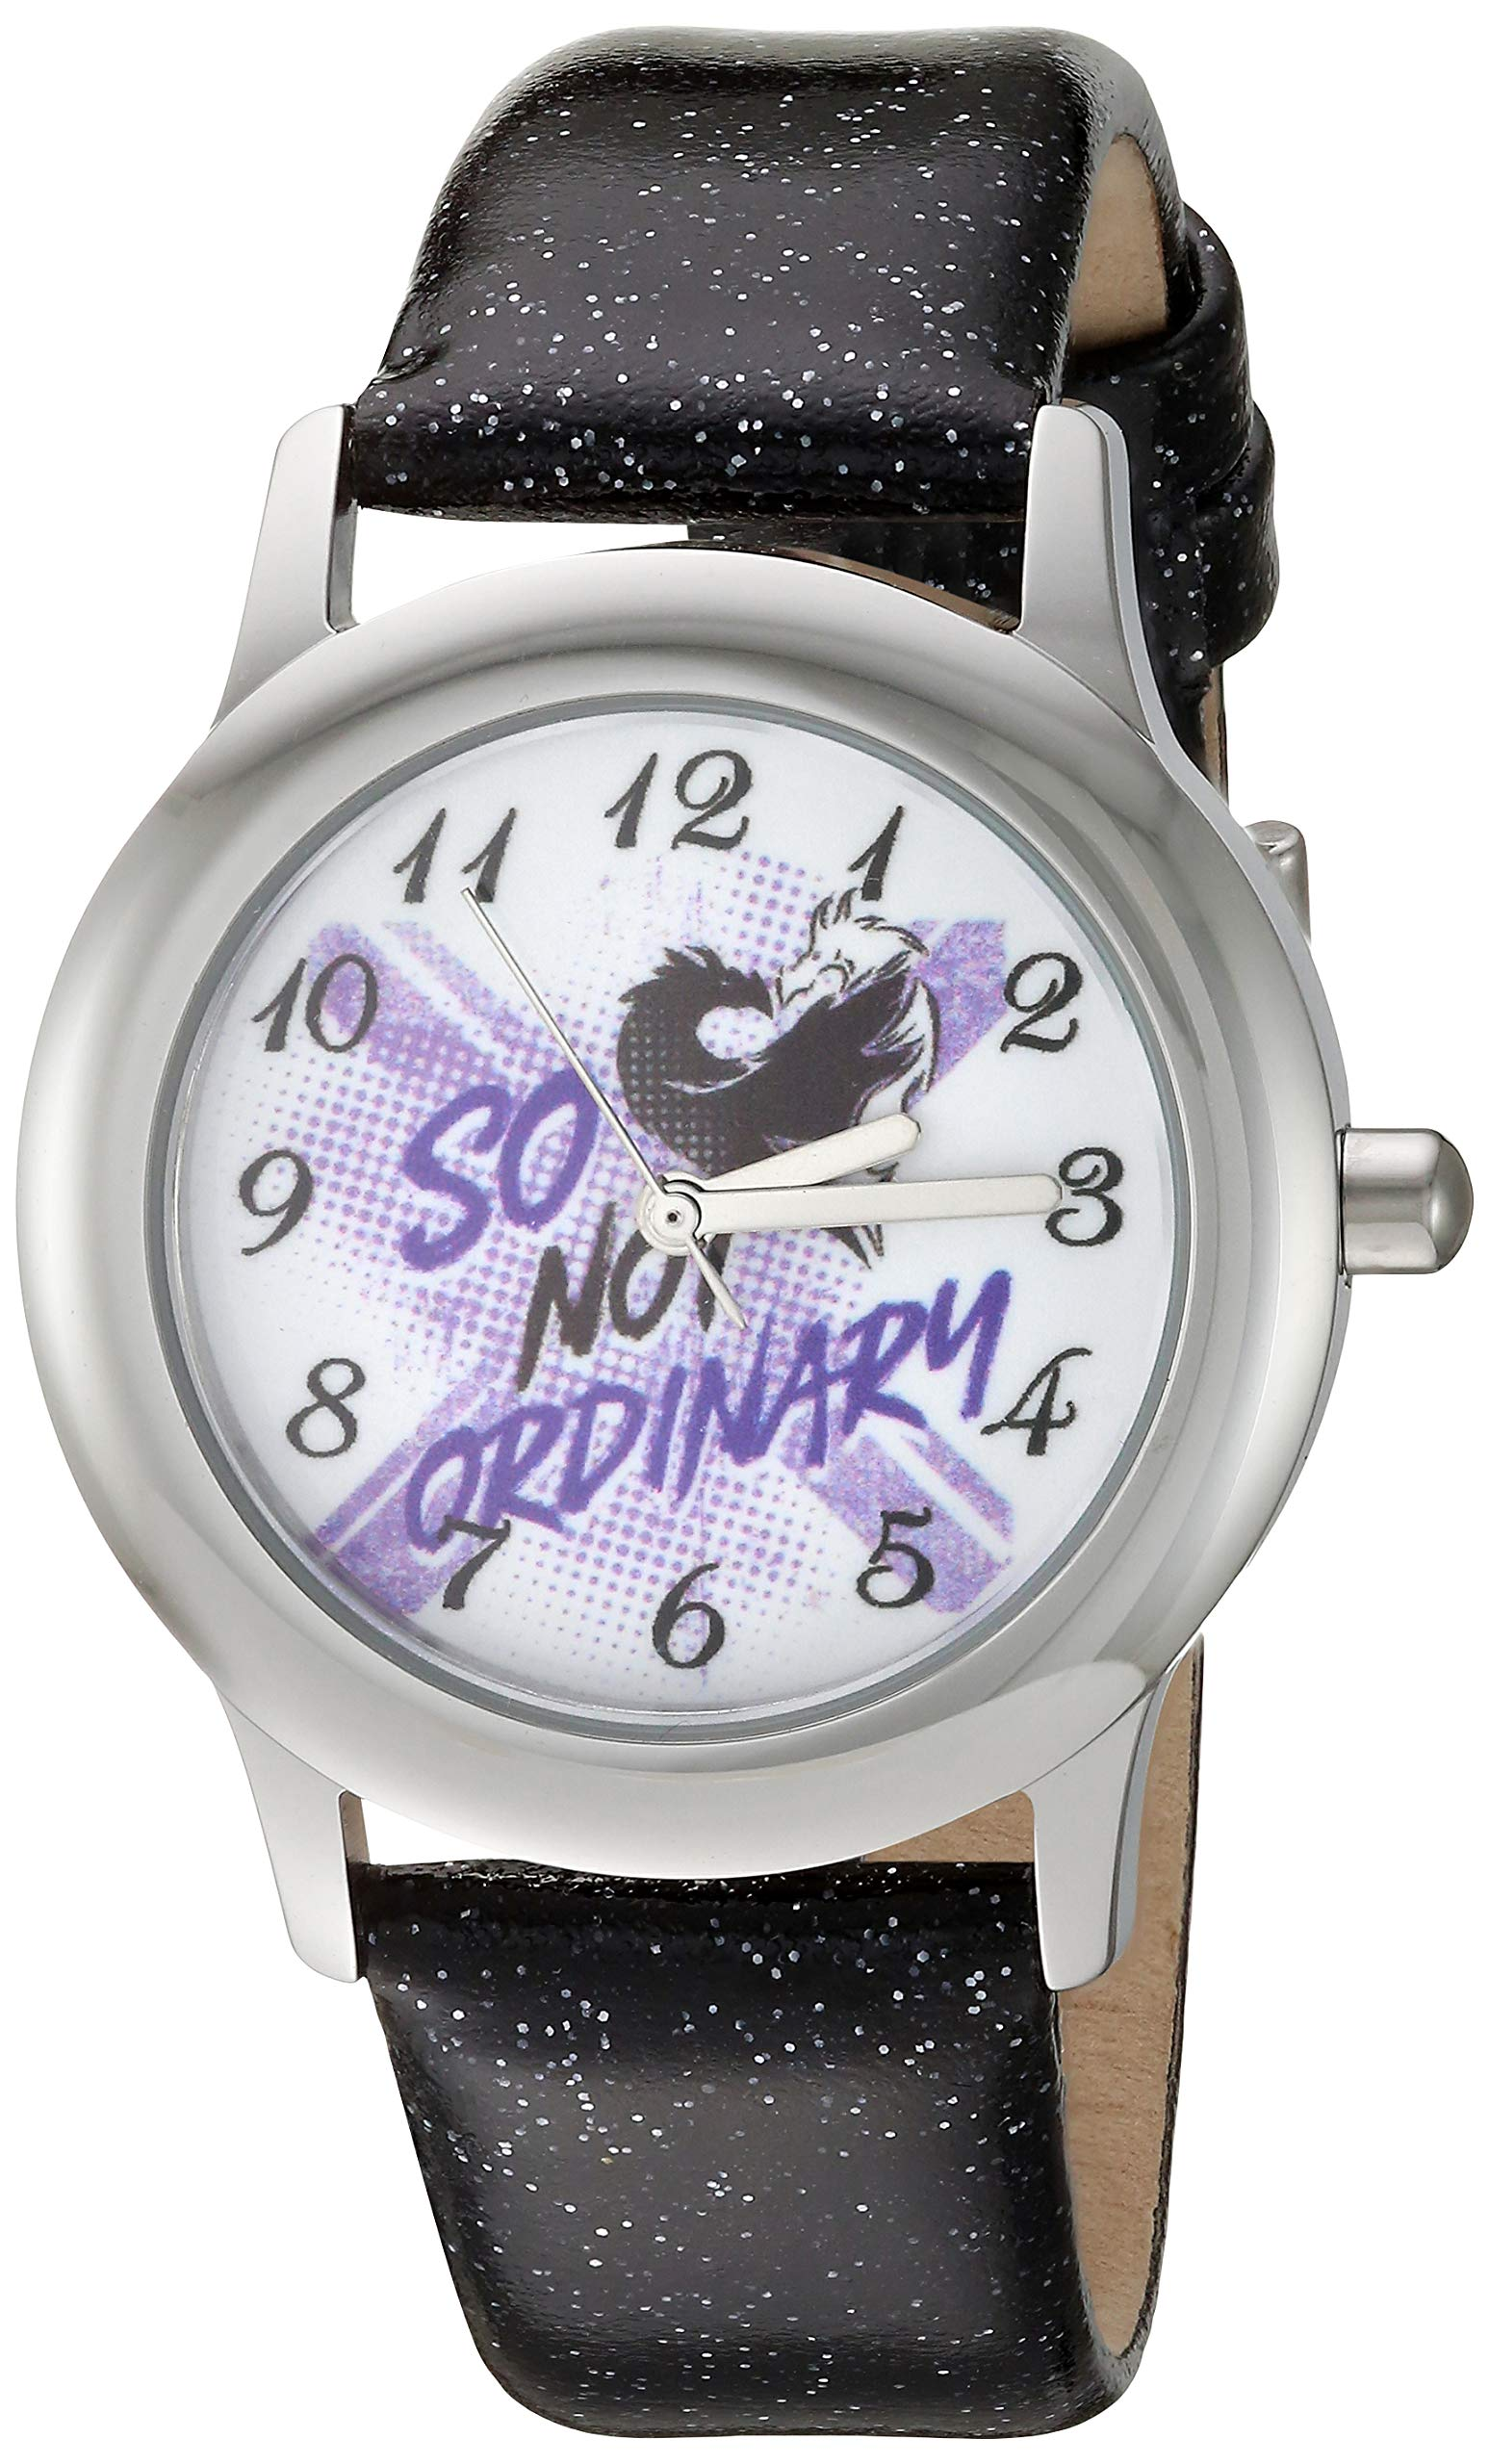 Disney Girls' Descendants 3 Stainless Steel Analog Quartz Watch with Patent Leather Strap, Black, 15 (Model: WDS000771) by Disney